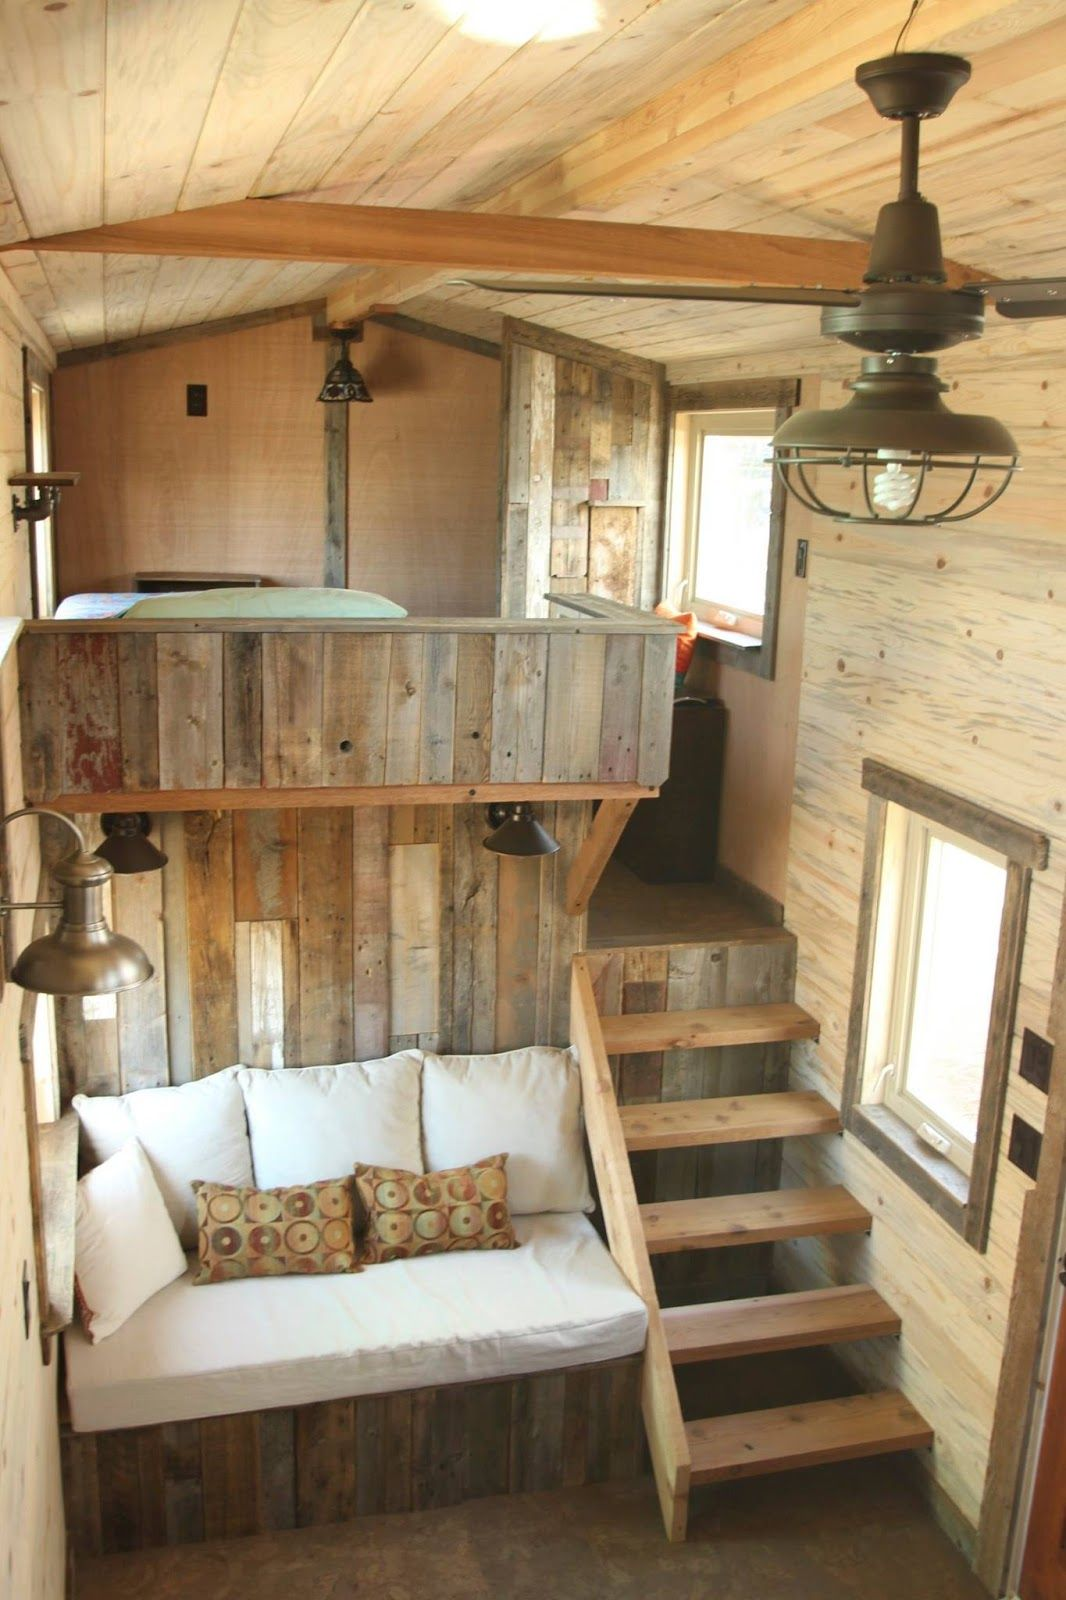 Favorite tiny house yet minus some of that wood a beautiful